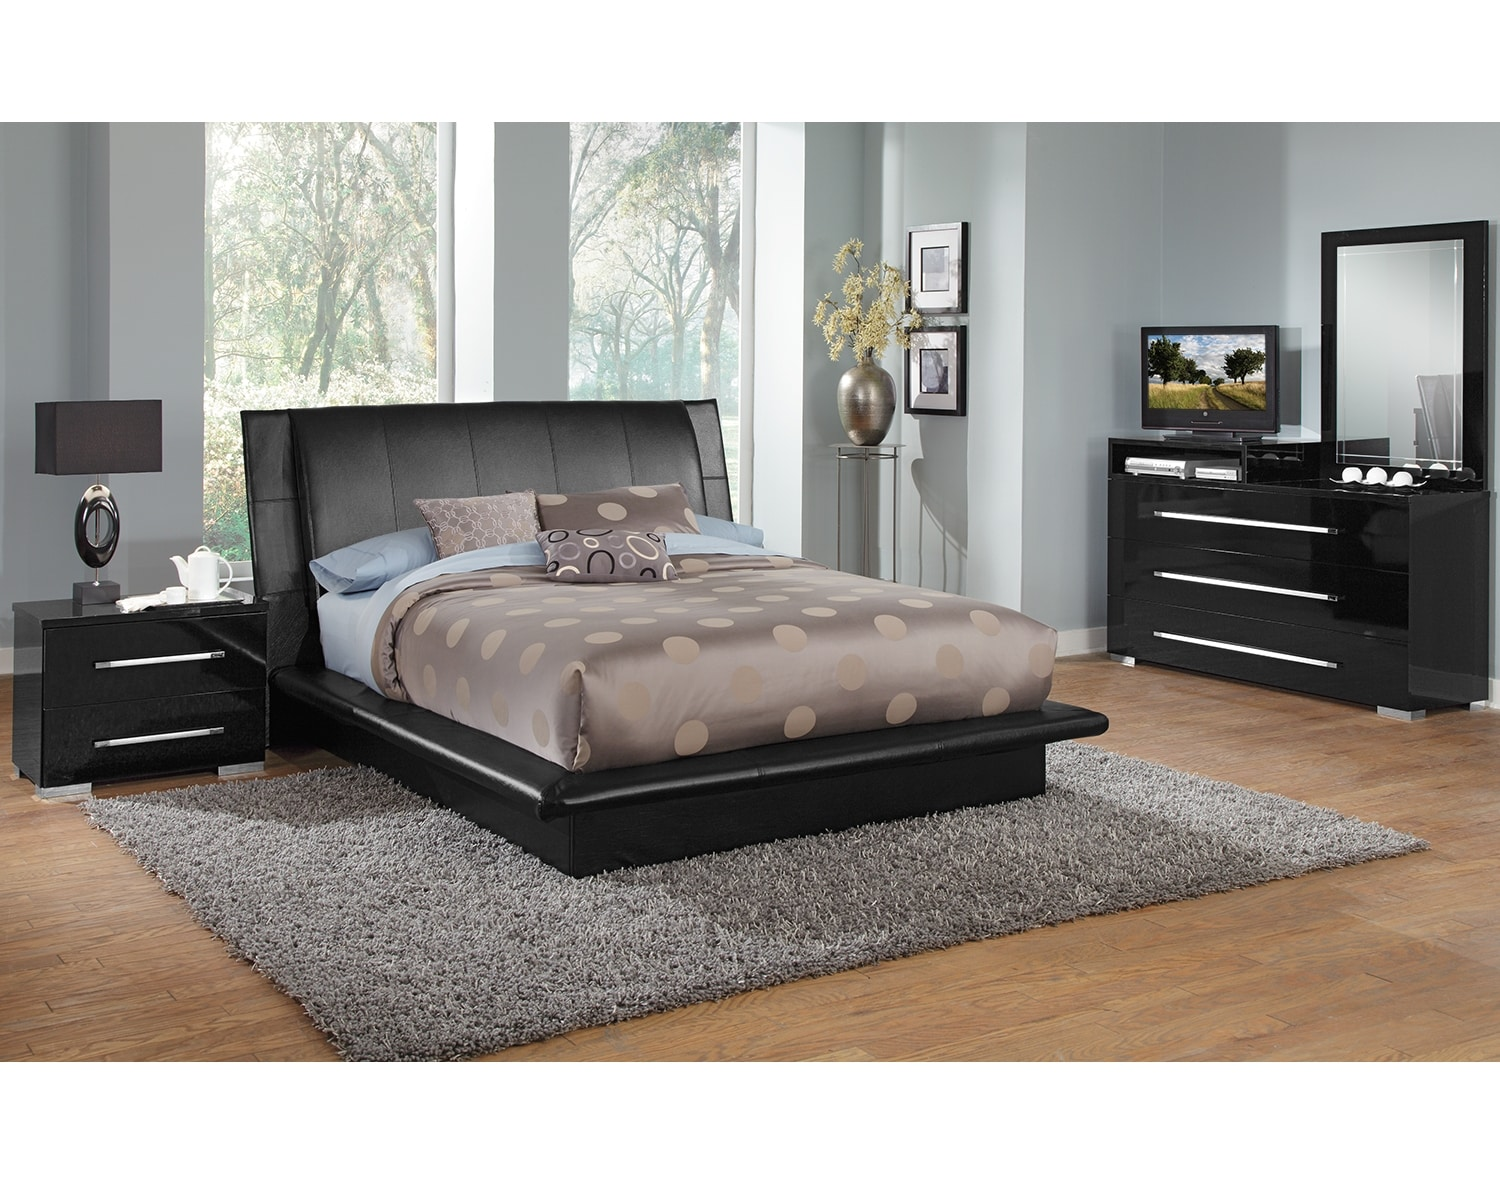 furniture thesoundlapse city bedroom house marilyn sets american com queen home bed value my signature stylish inside modern for